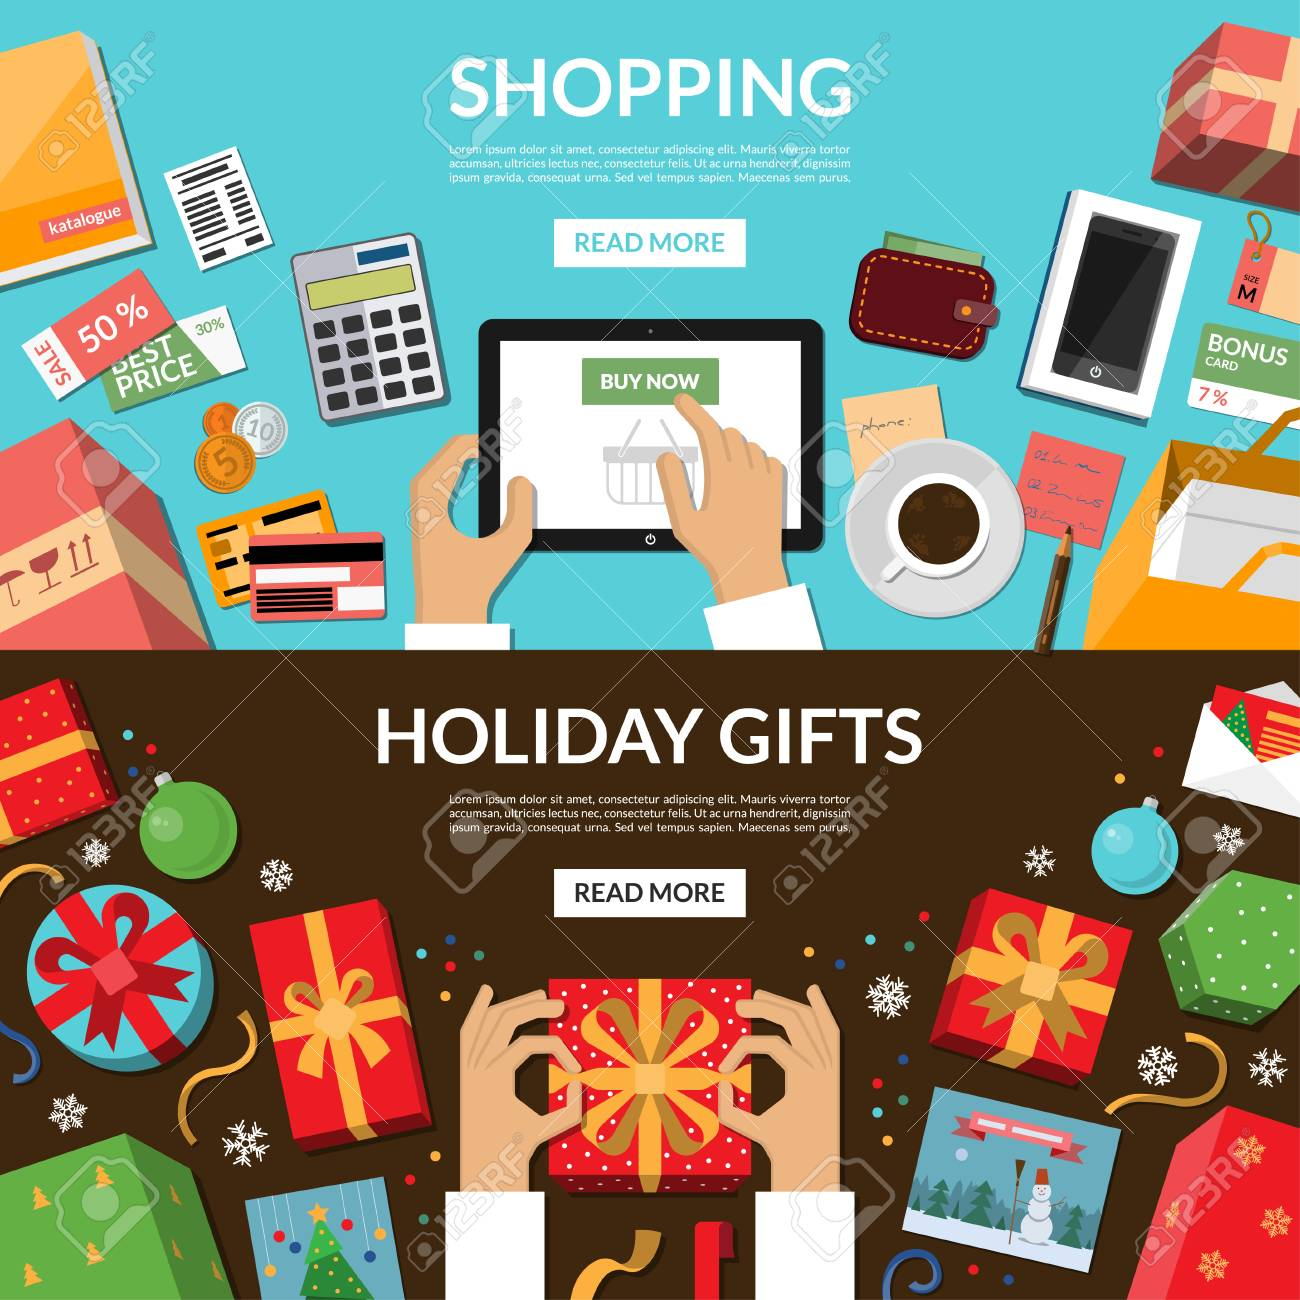 Online Shopping Preparing For Holidays Wrapping Of Christmas